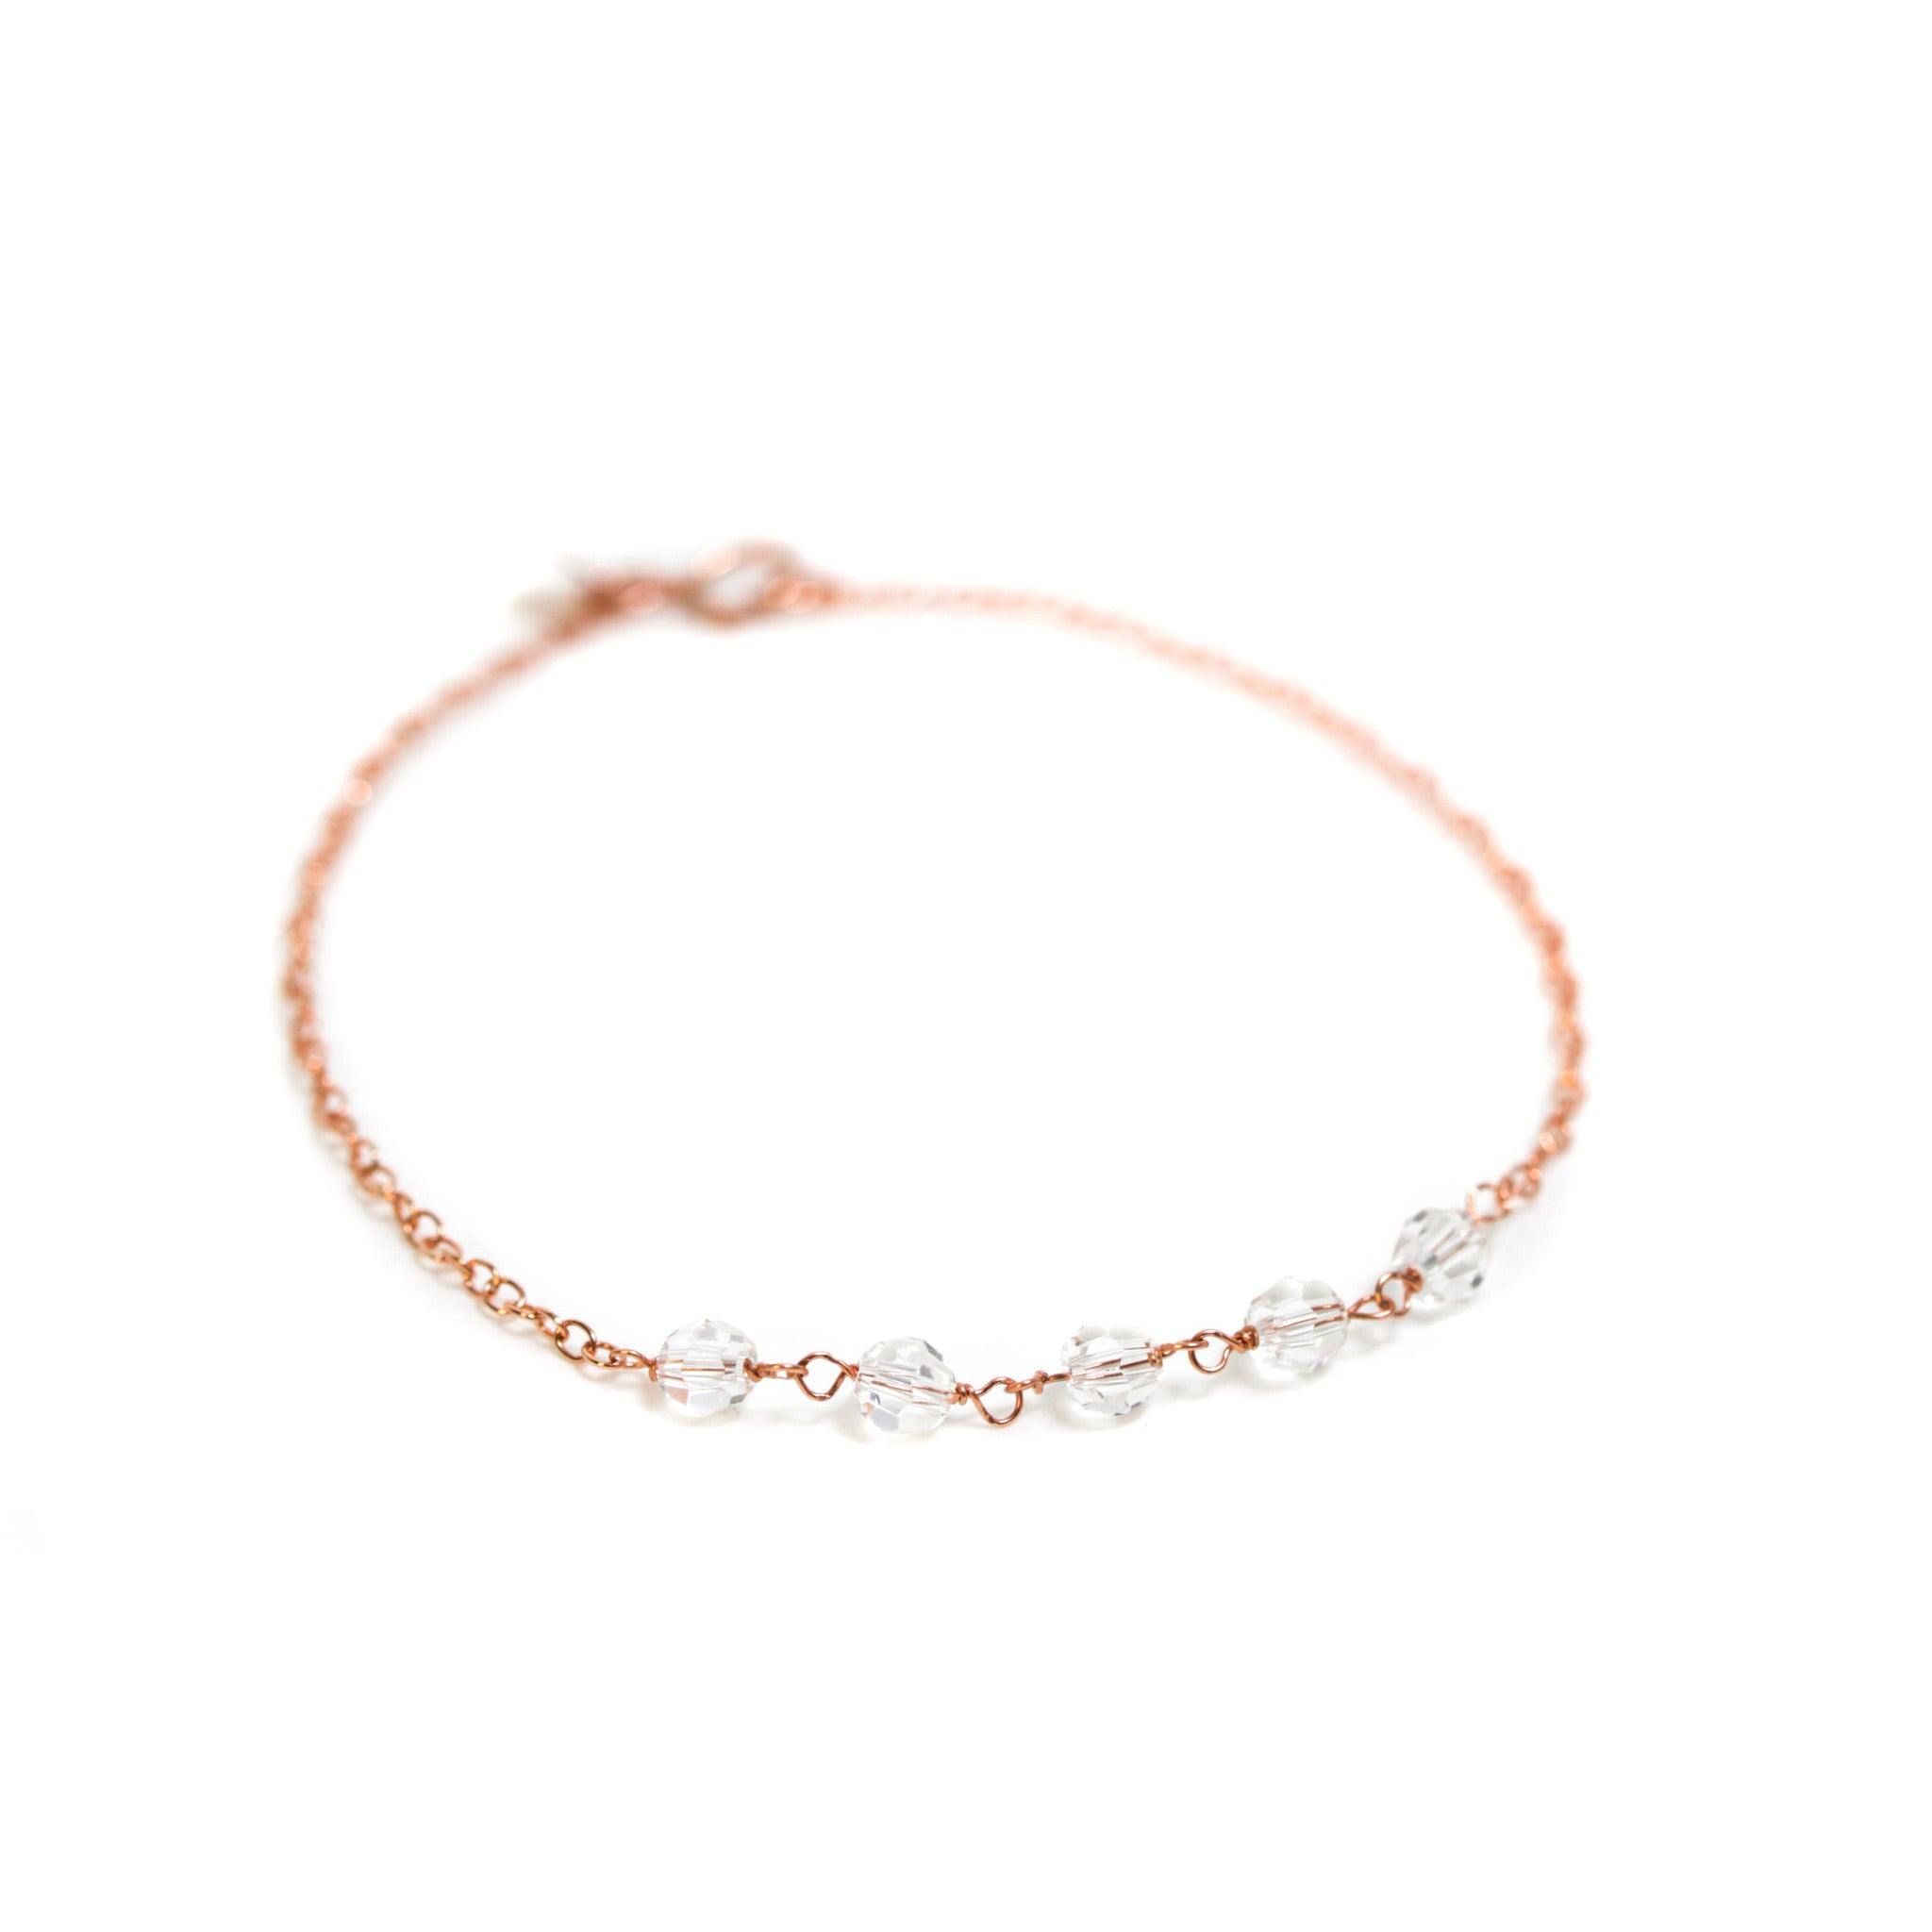 dbed5e71abc Home > Products > Strand Bracelet - Rose Gold with Swarovski Crystal